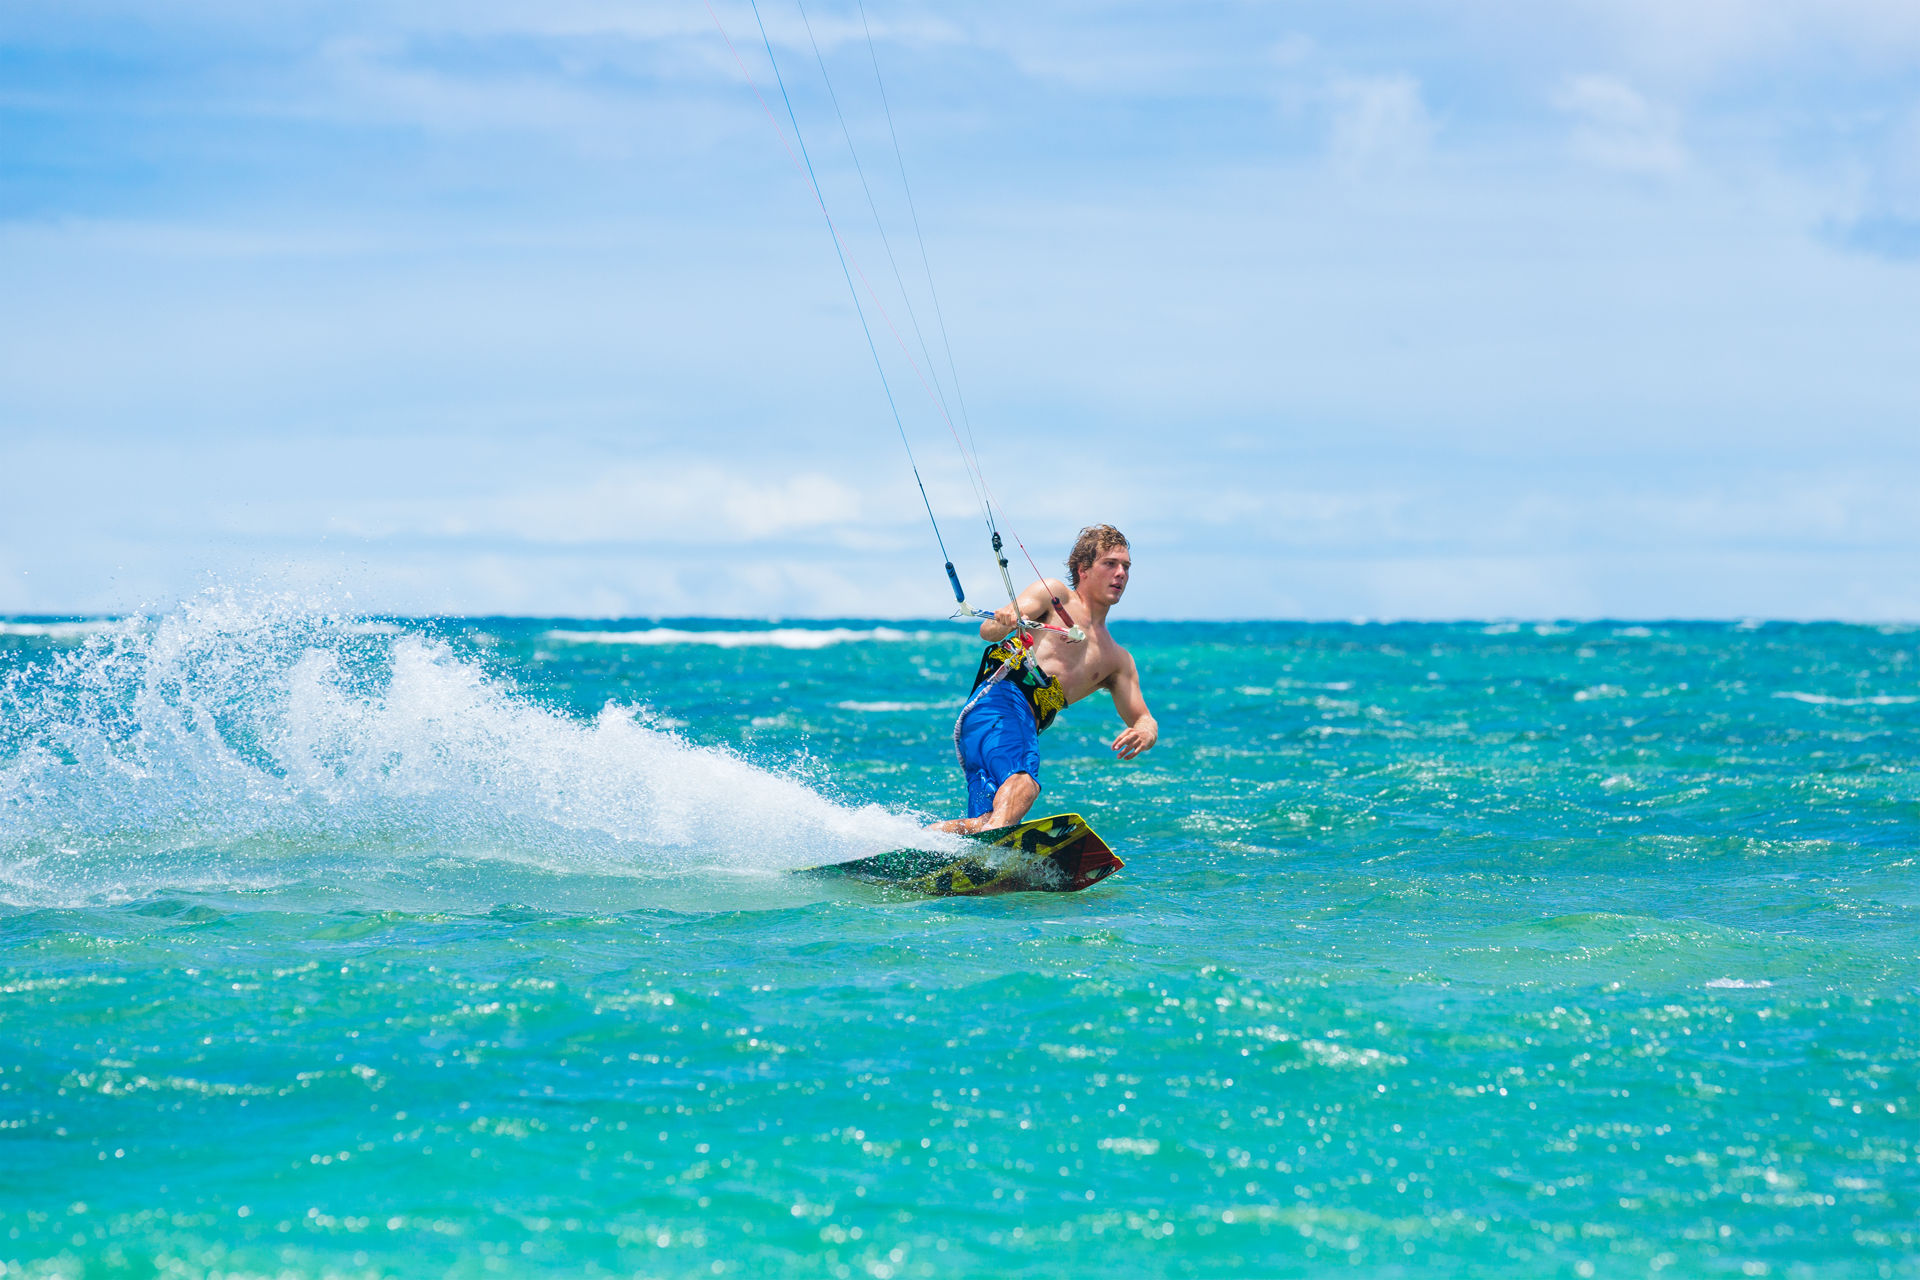 Kite Boarding, Fun in the ocean, Extreme Sport, Leukada